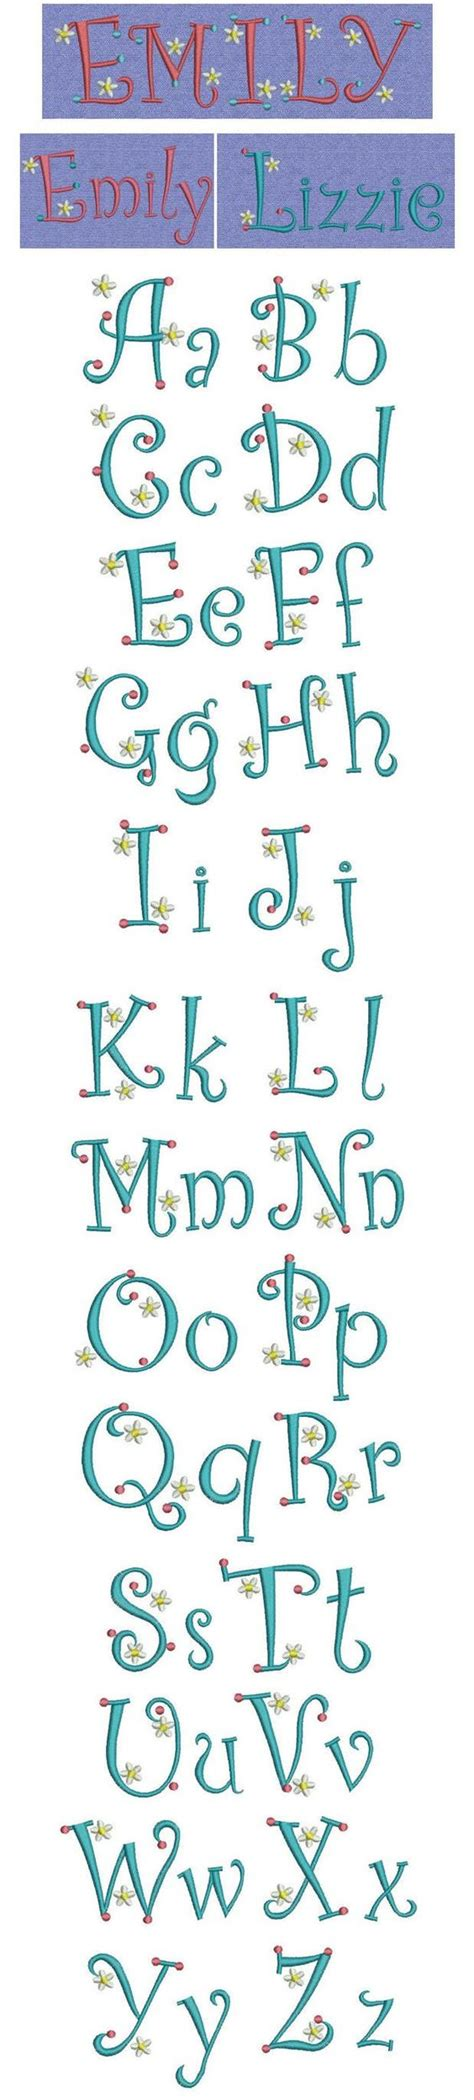 dot pattern alphabet embroidery free machine embroidery designs dots